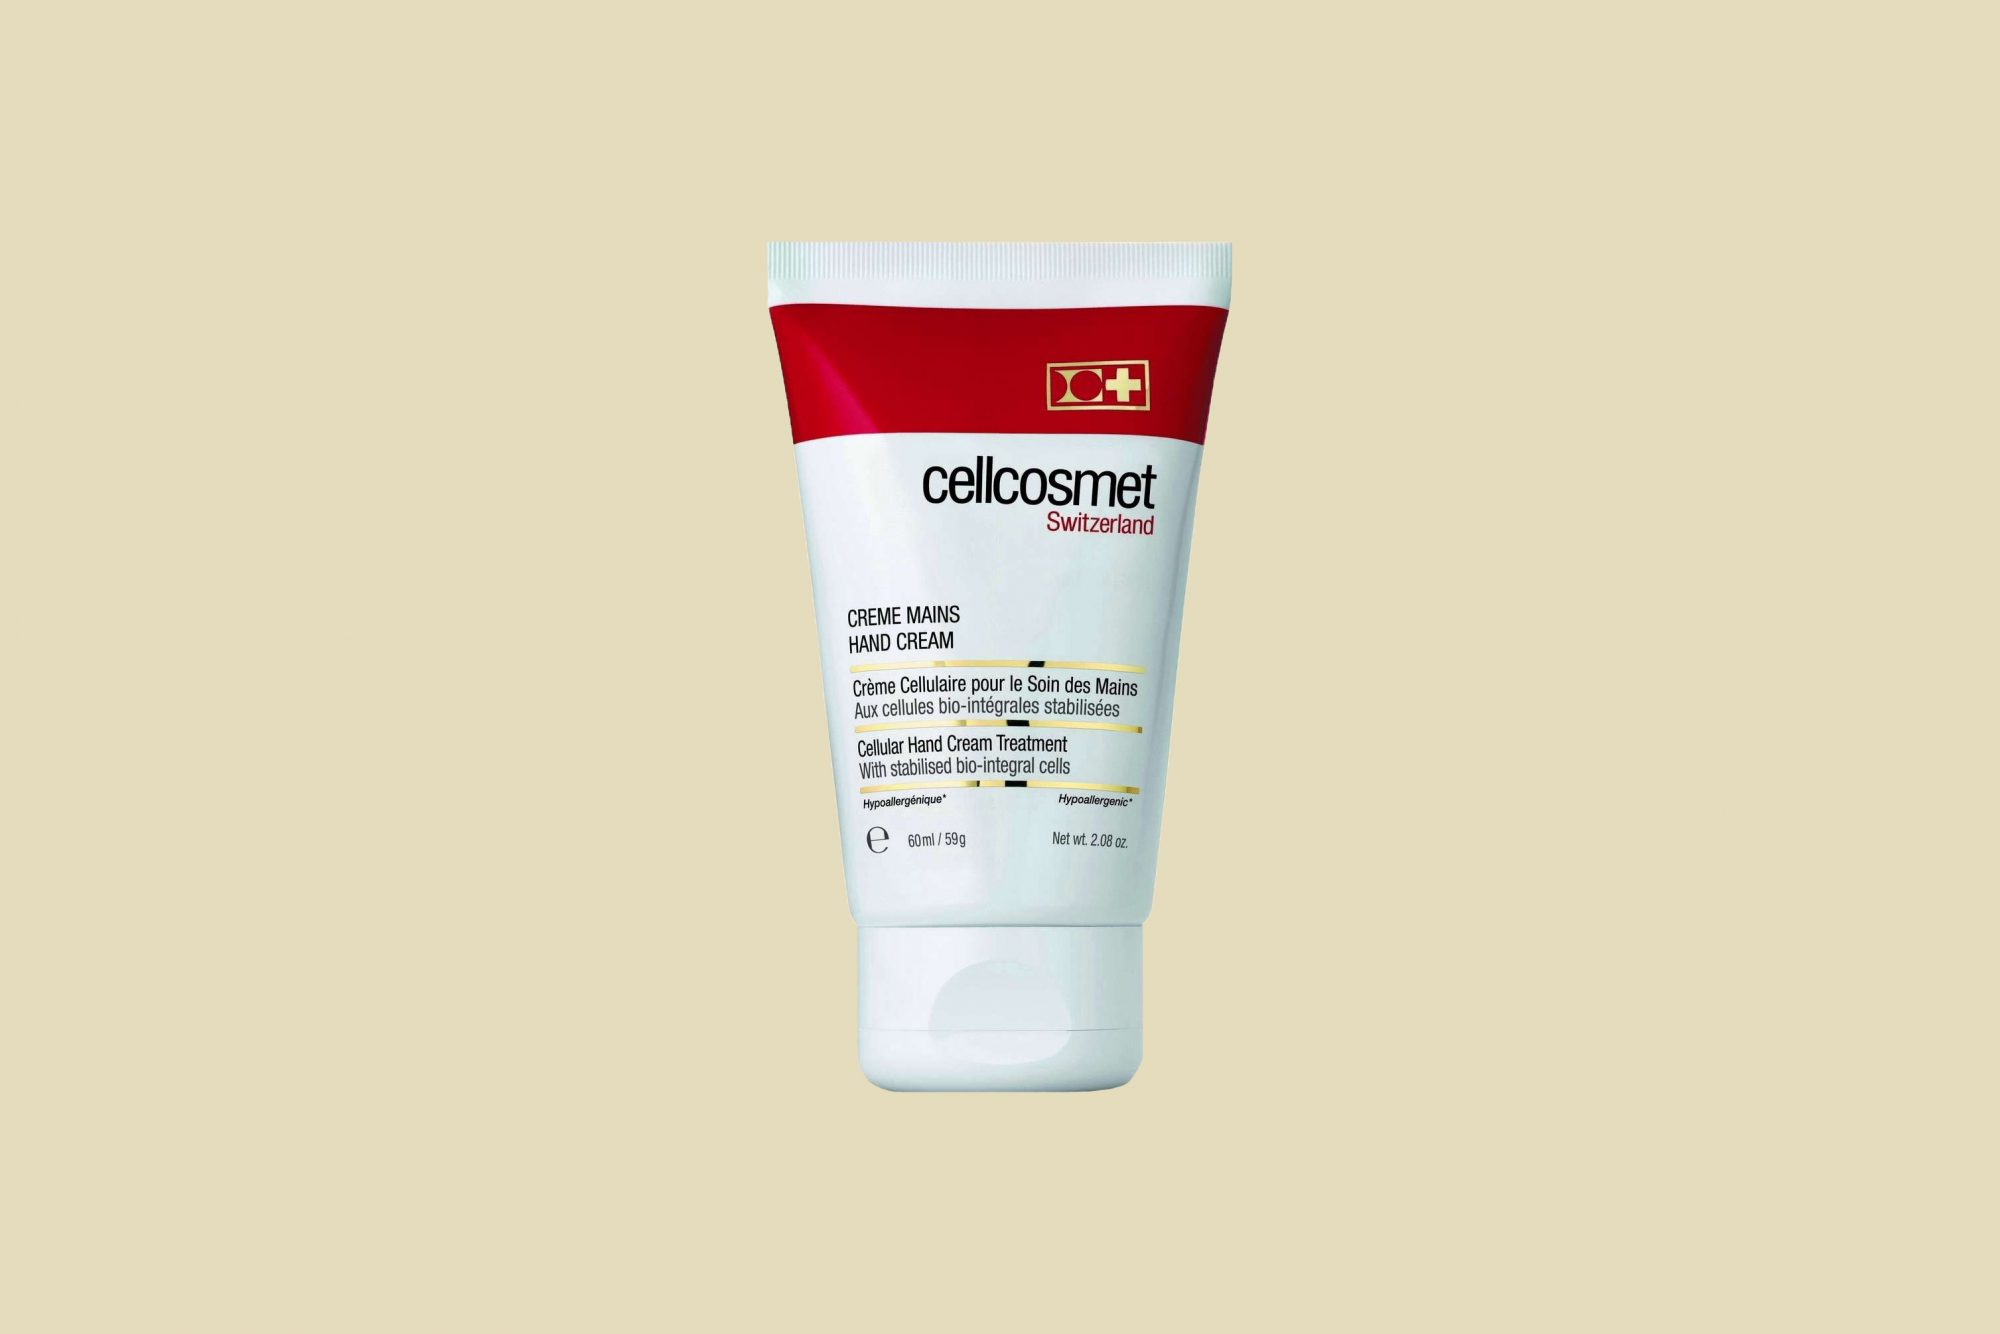 Cellcosmet Cellular Hand Cream